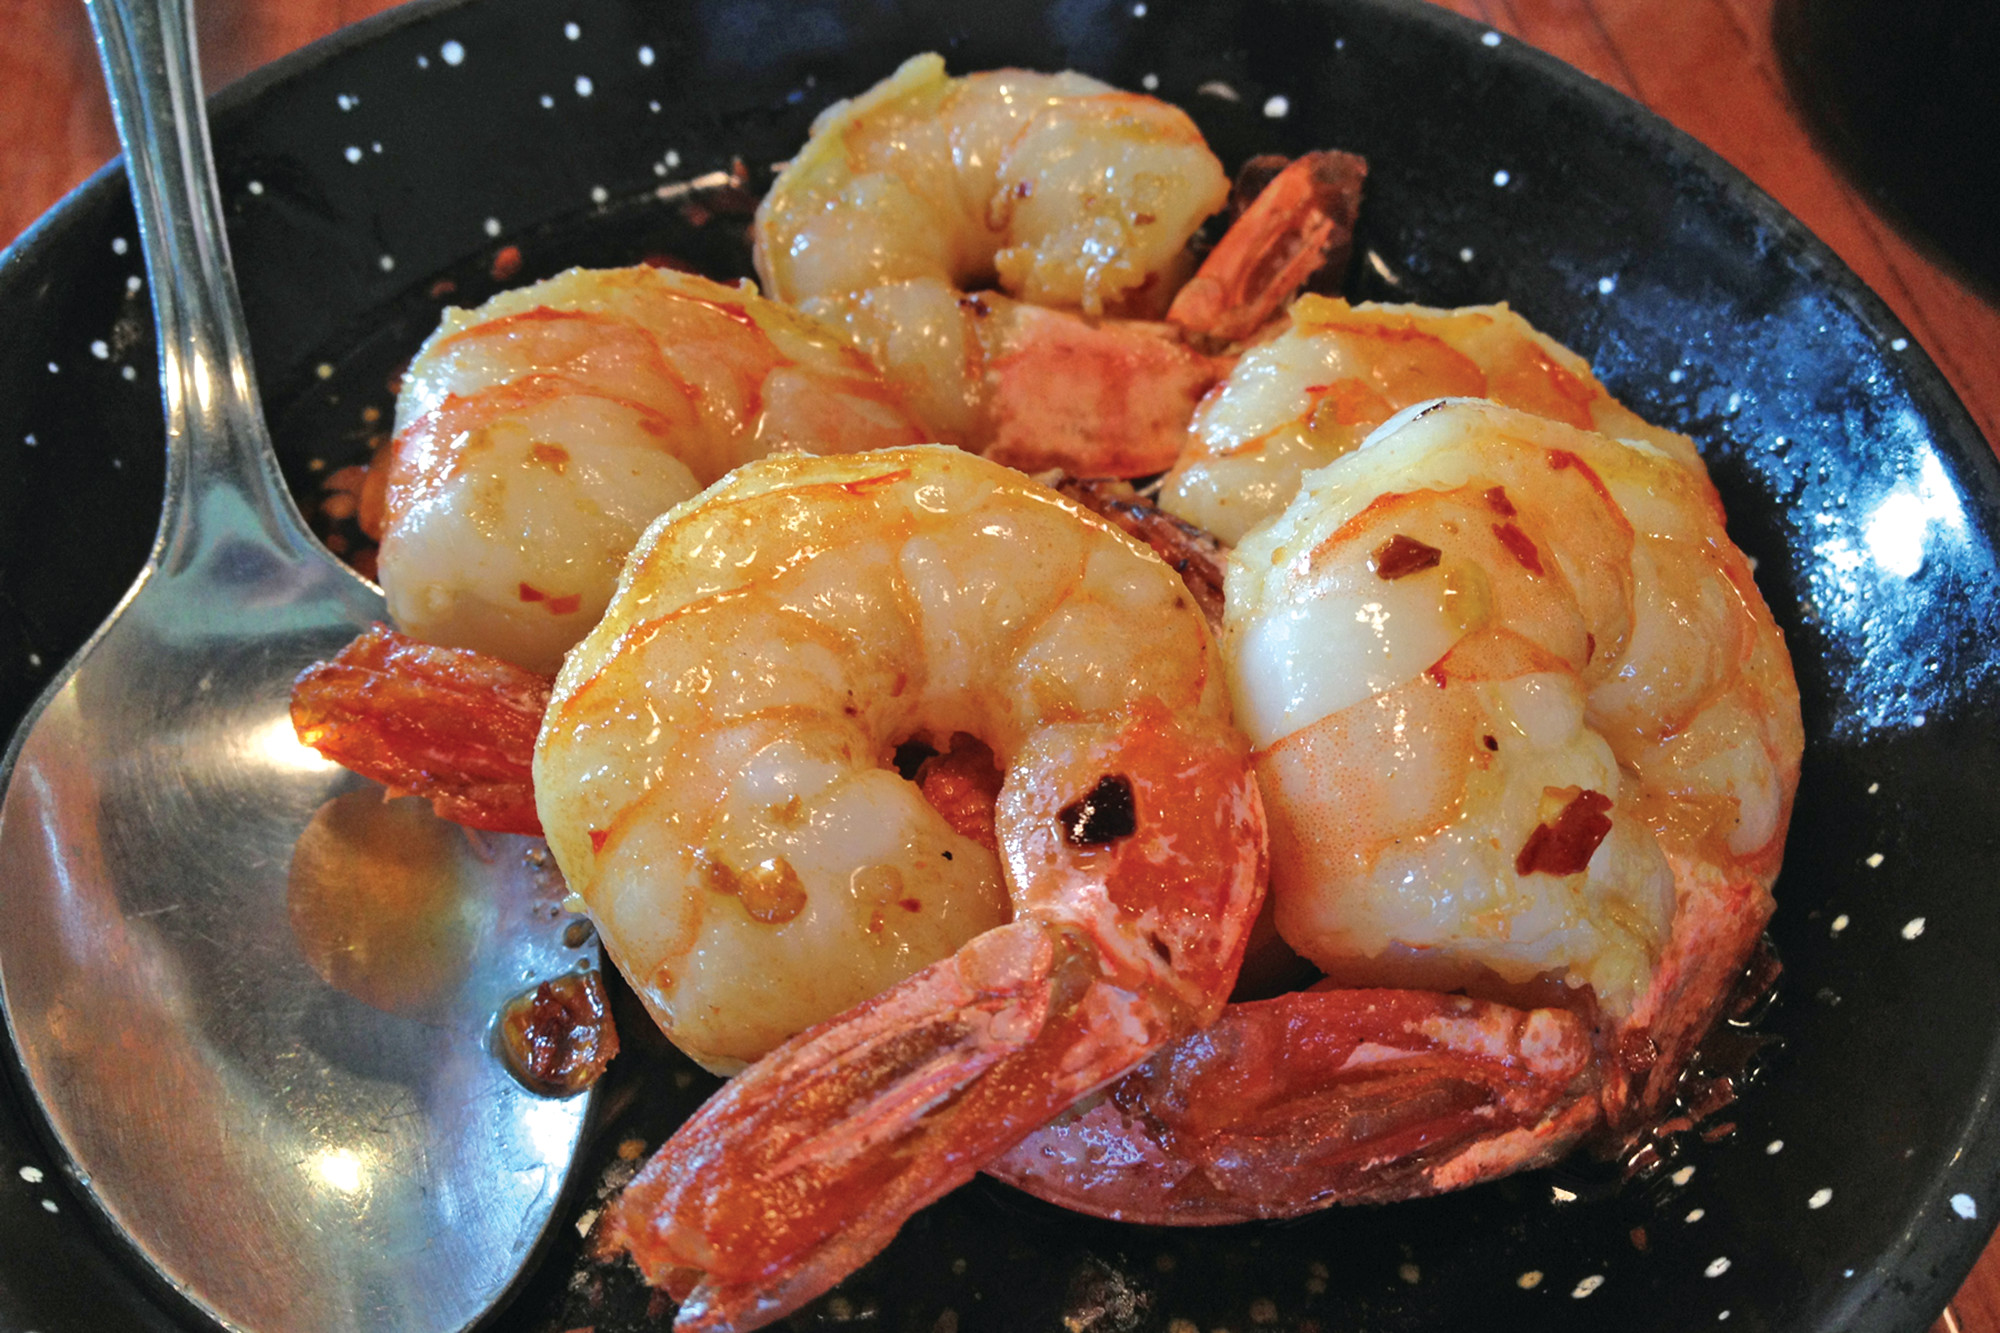 The shrimp sautéed in olive oil, garlic and crushed red pepper is a simple yet flavorful dish with a little kick.